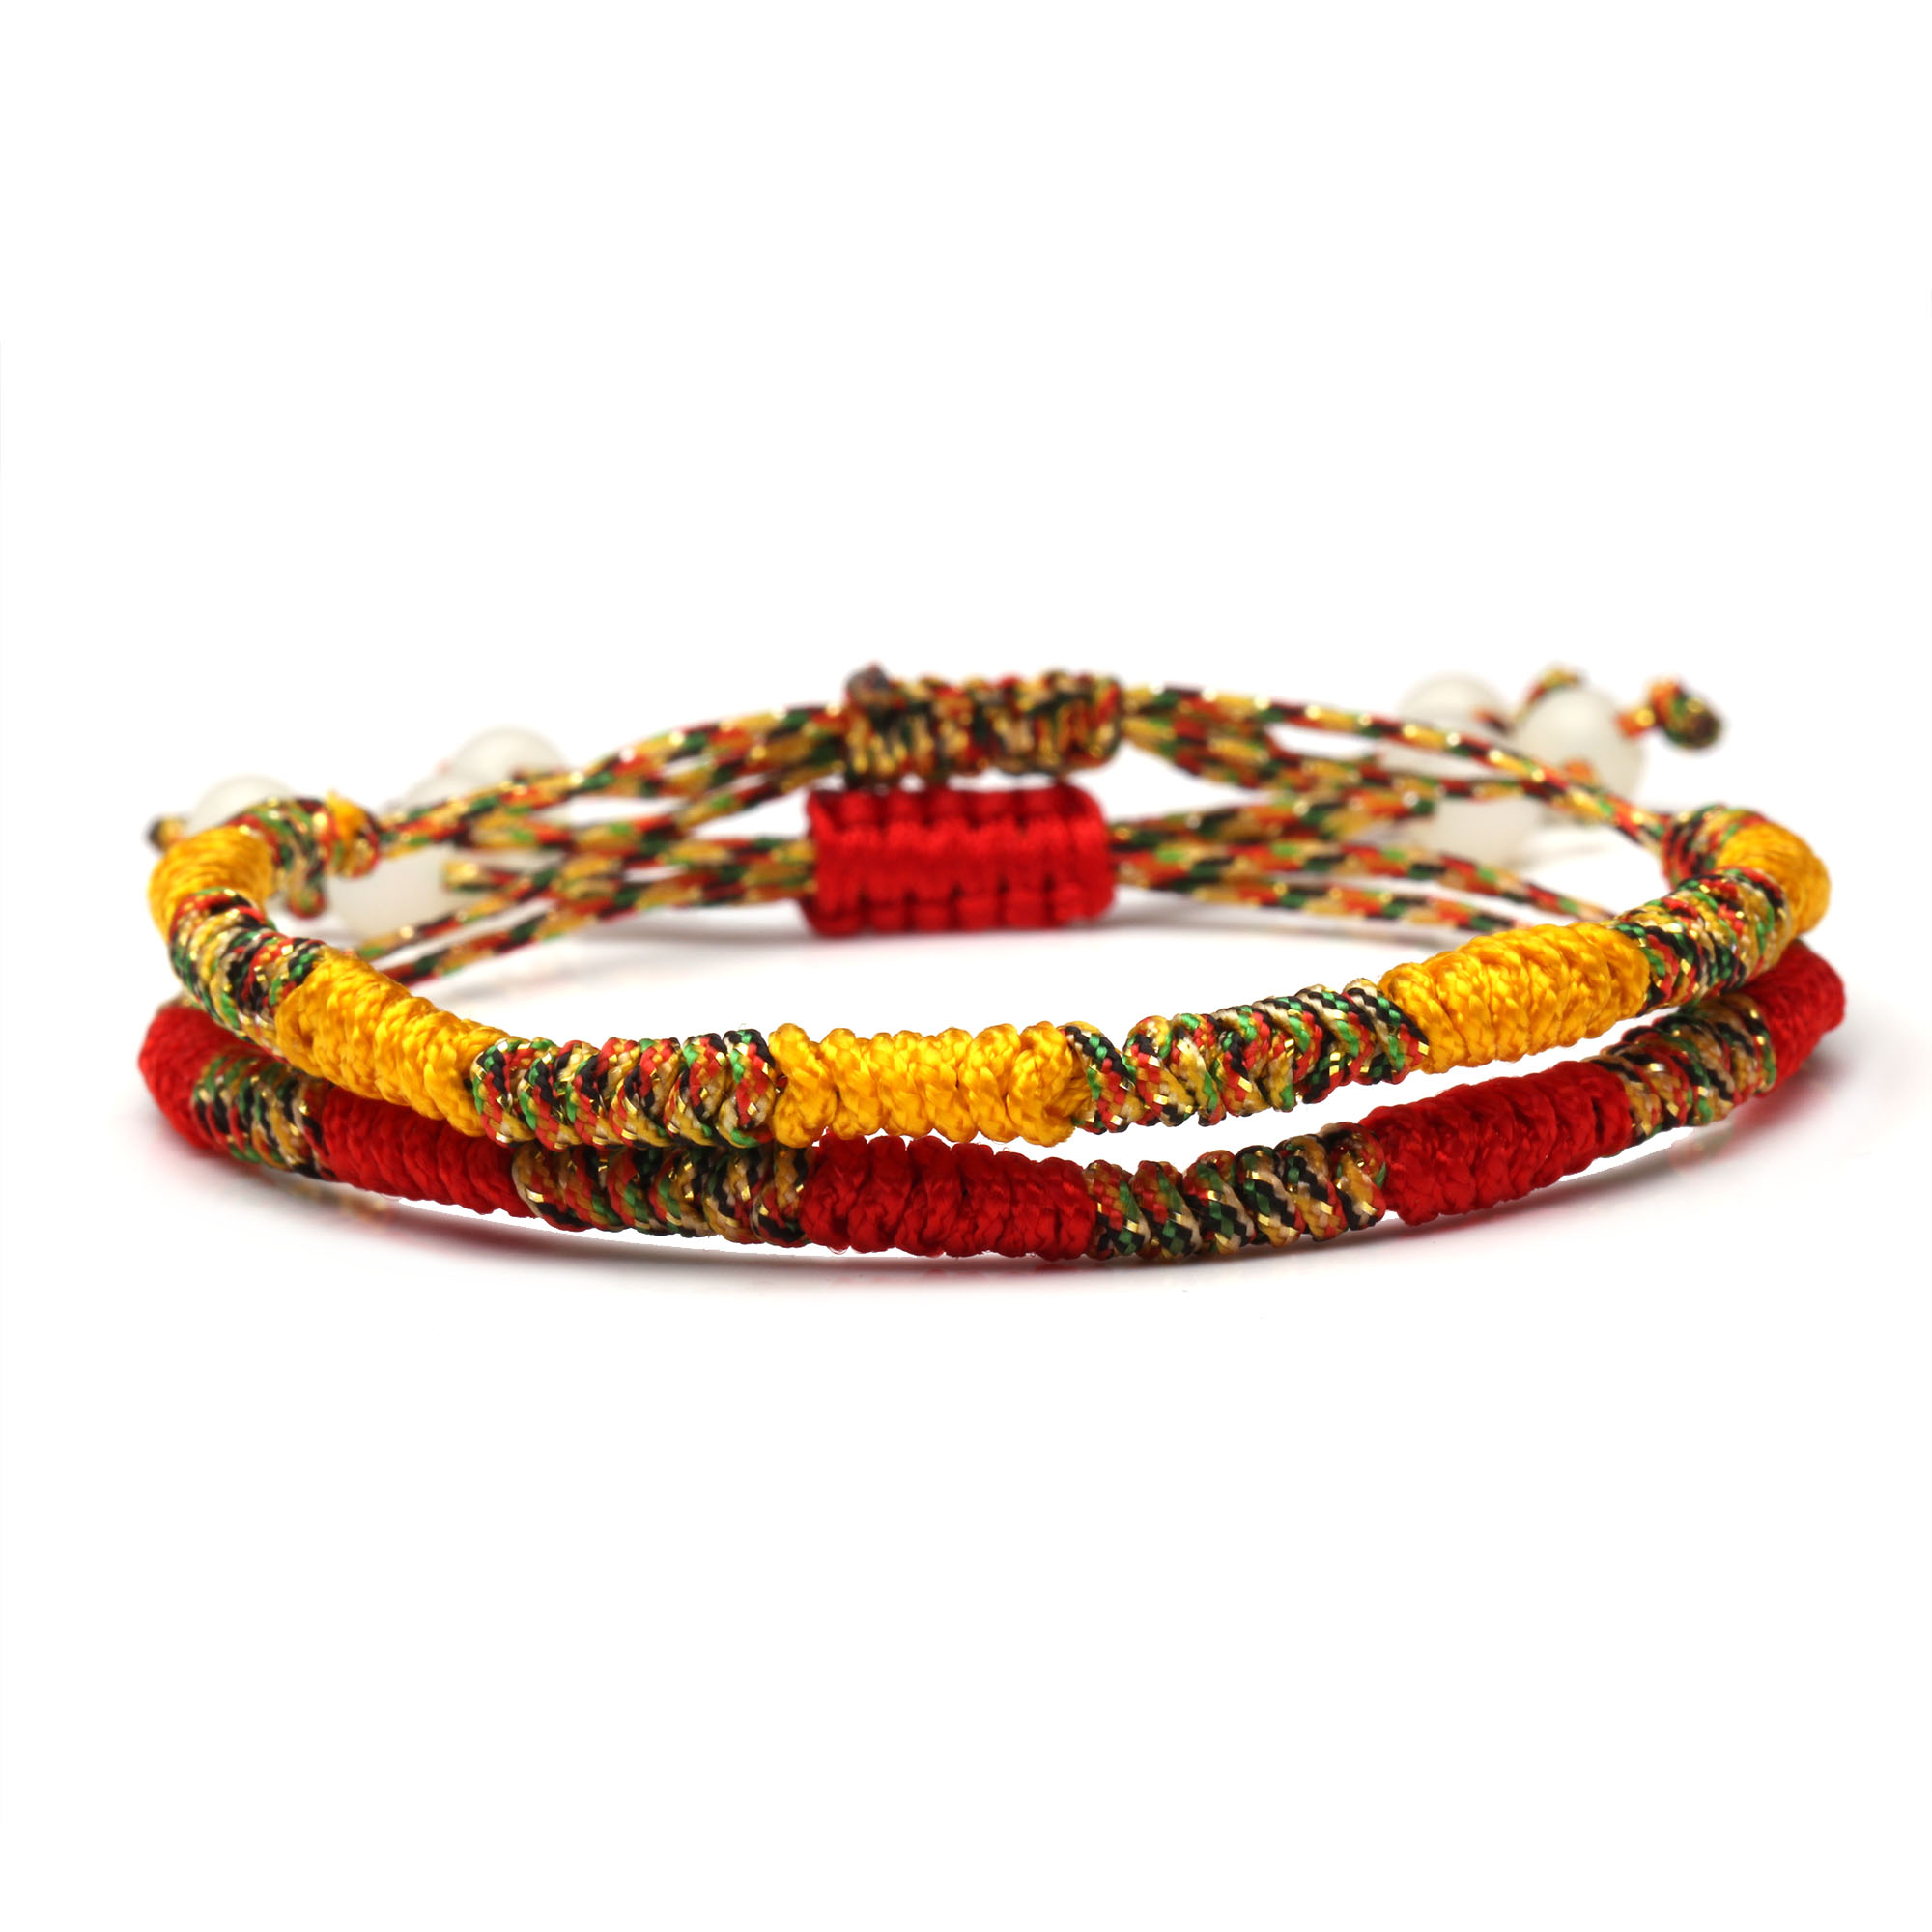 Tibetan Buddhist Lucky Knot Bracelet Women Men Earth Yellow Red Iridescent Mix Color String Braided Adjustable Bracelets Present